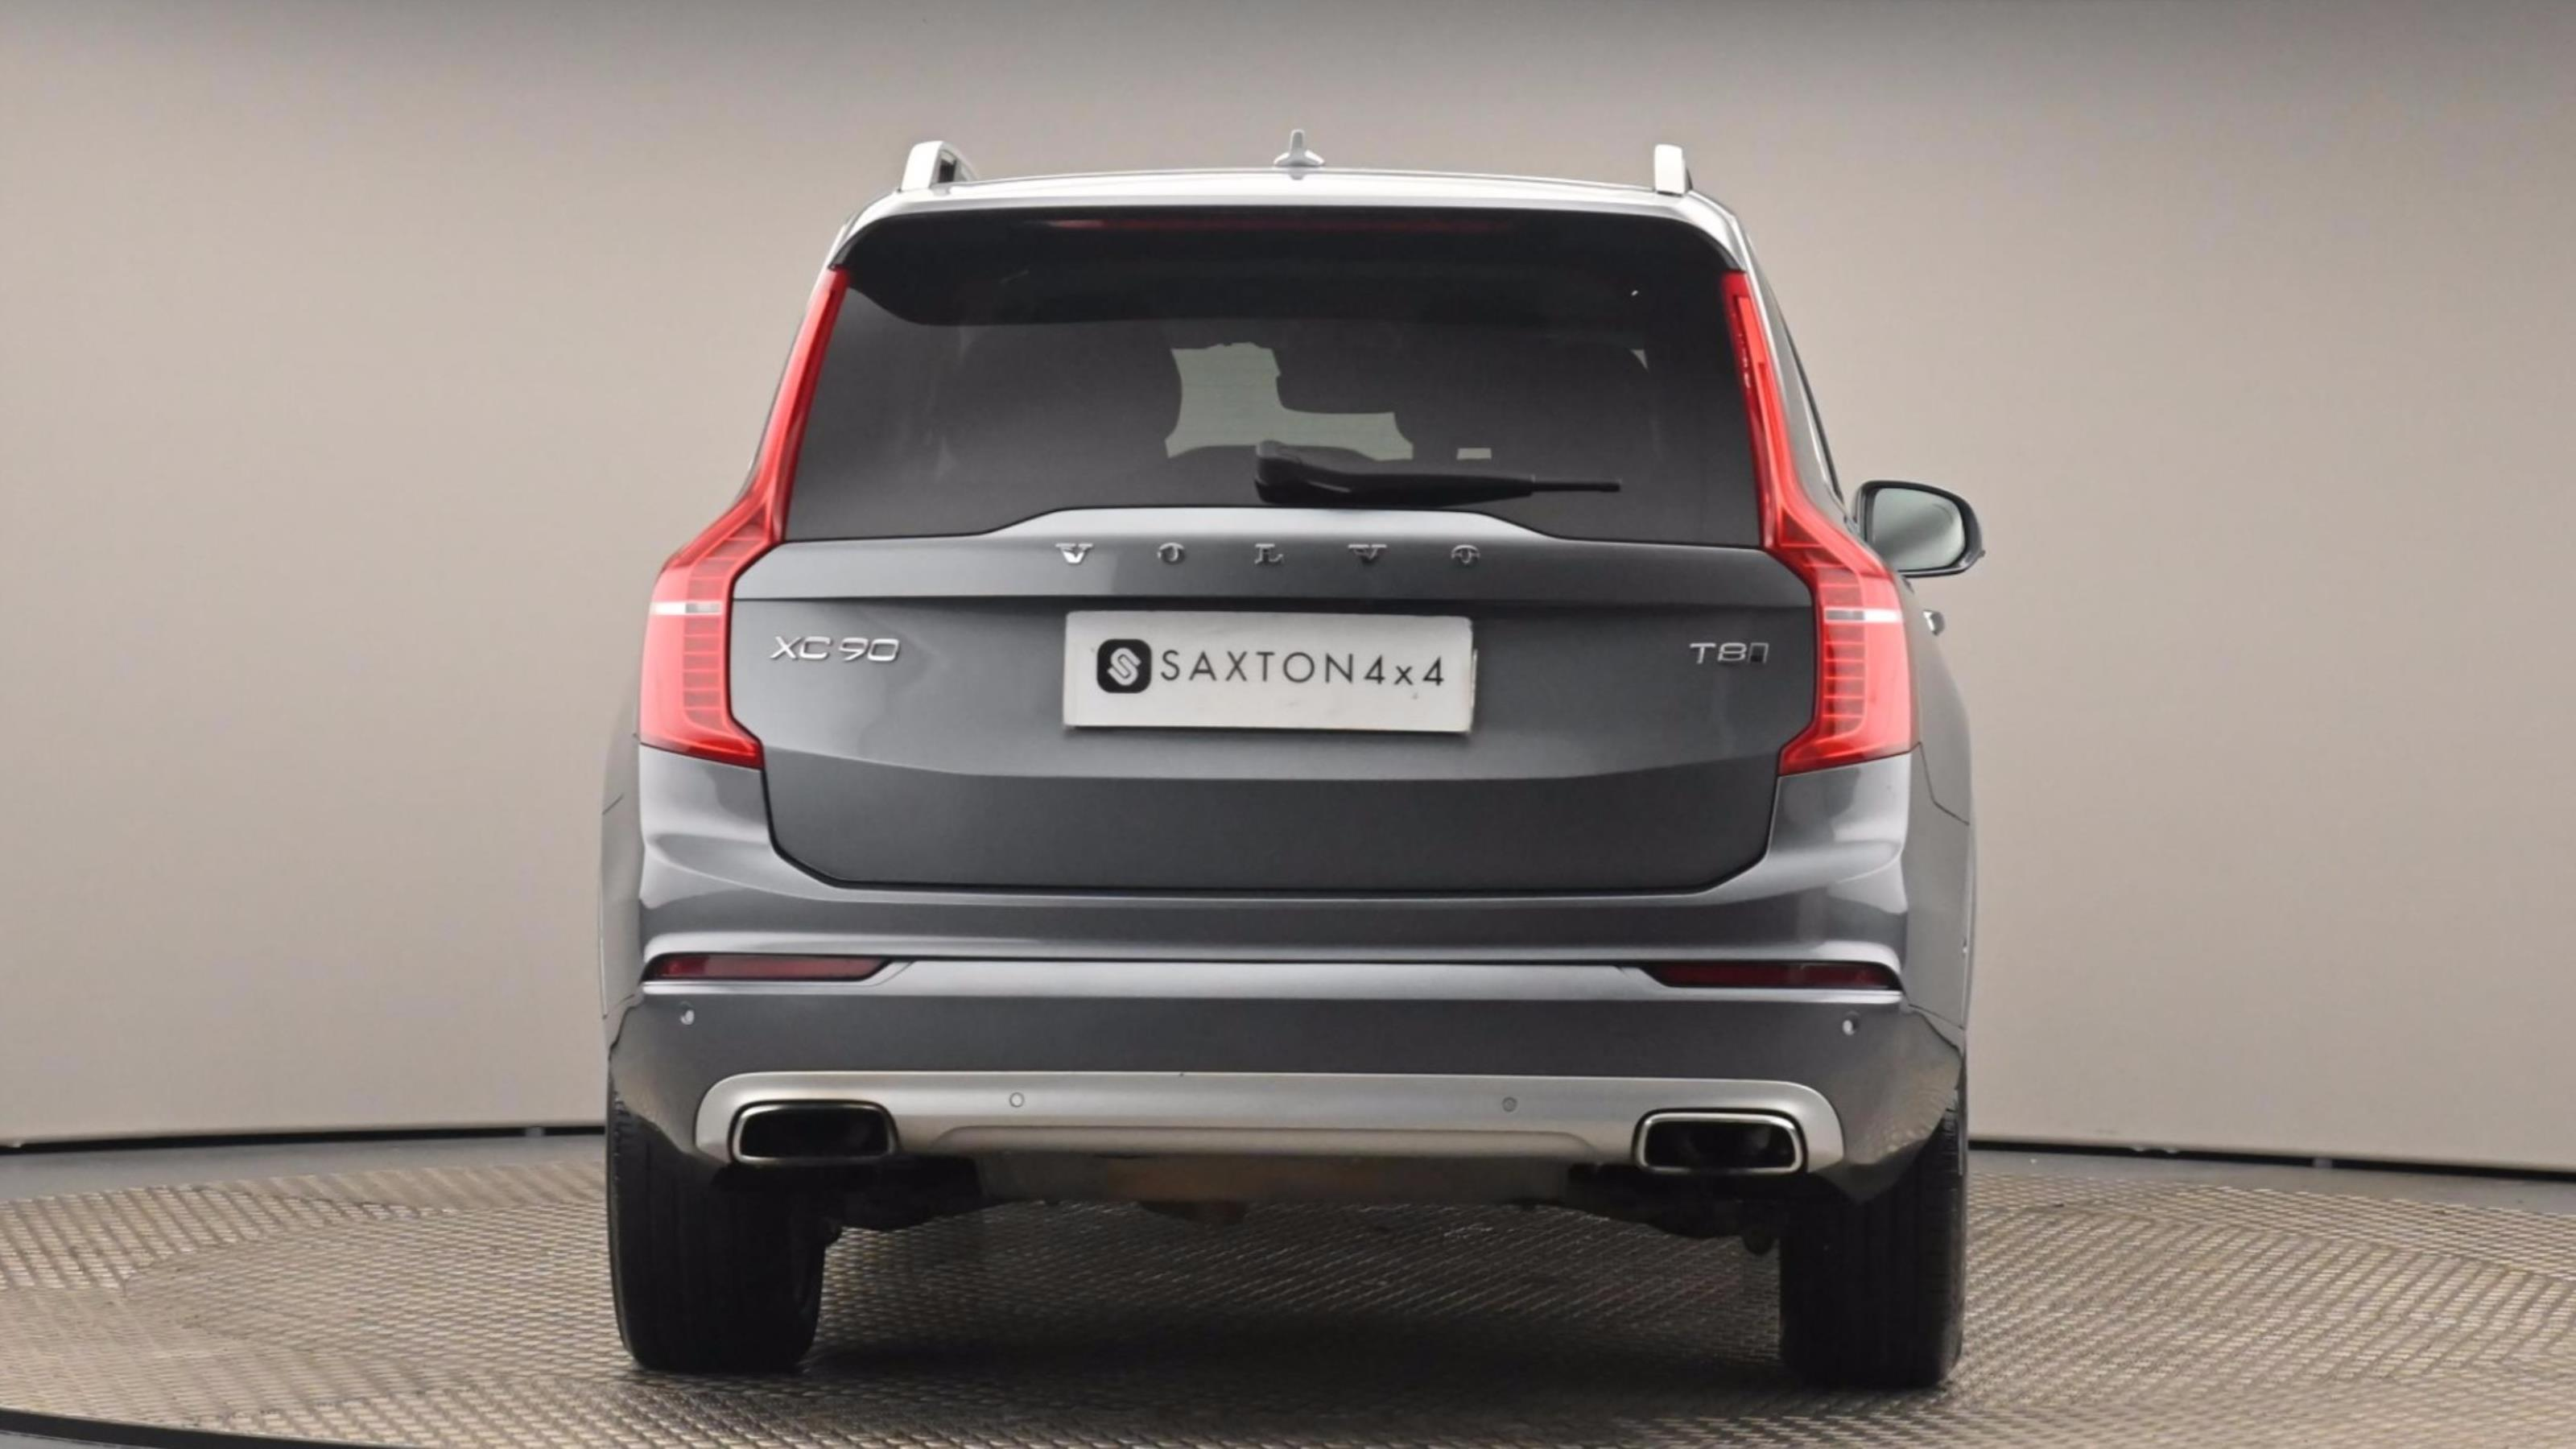 Used 2017 Volvo XC90 2.0 T8 Hybrid Momentum Pro 5dr Geartronic Grey at Saxton4x4